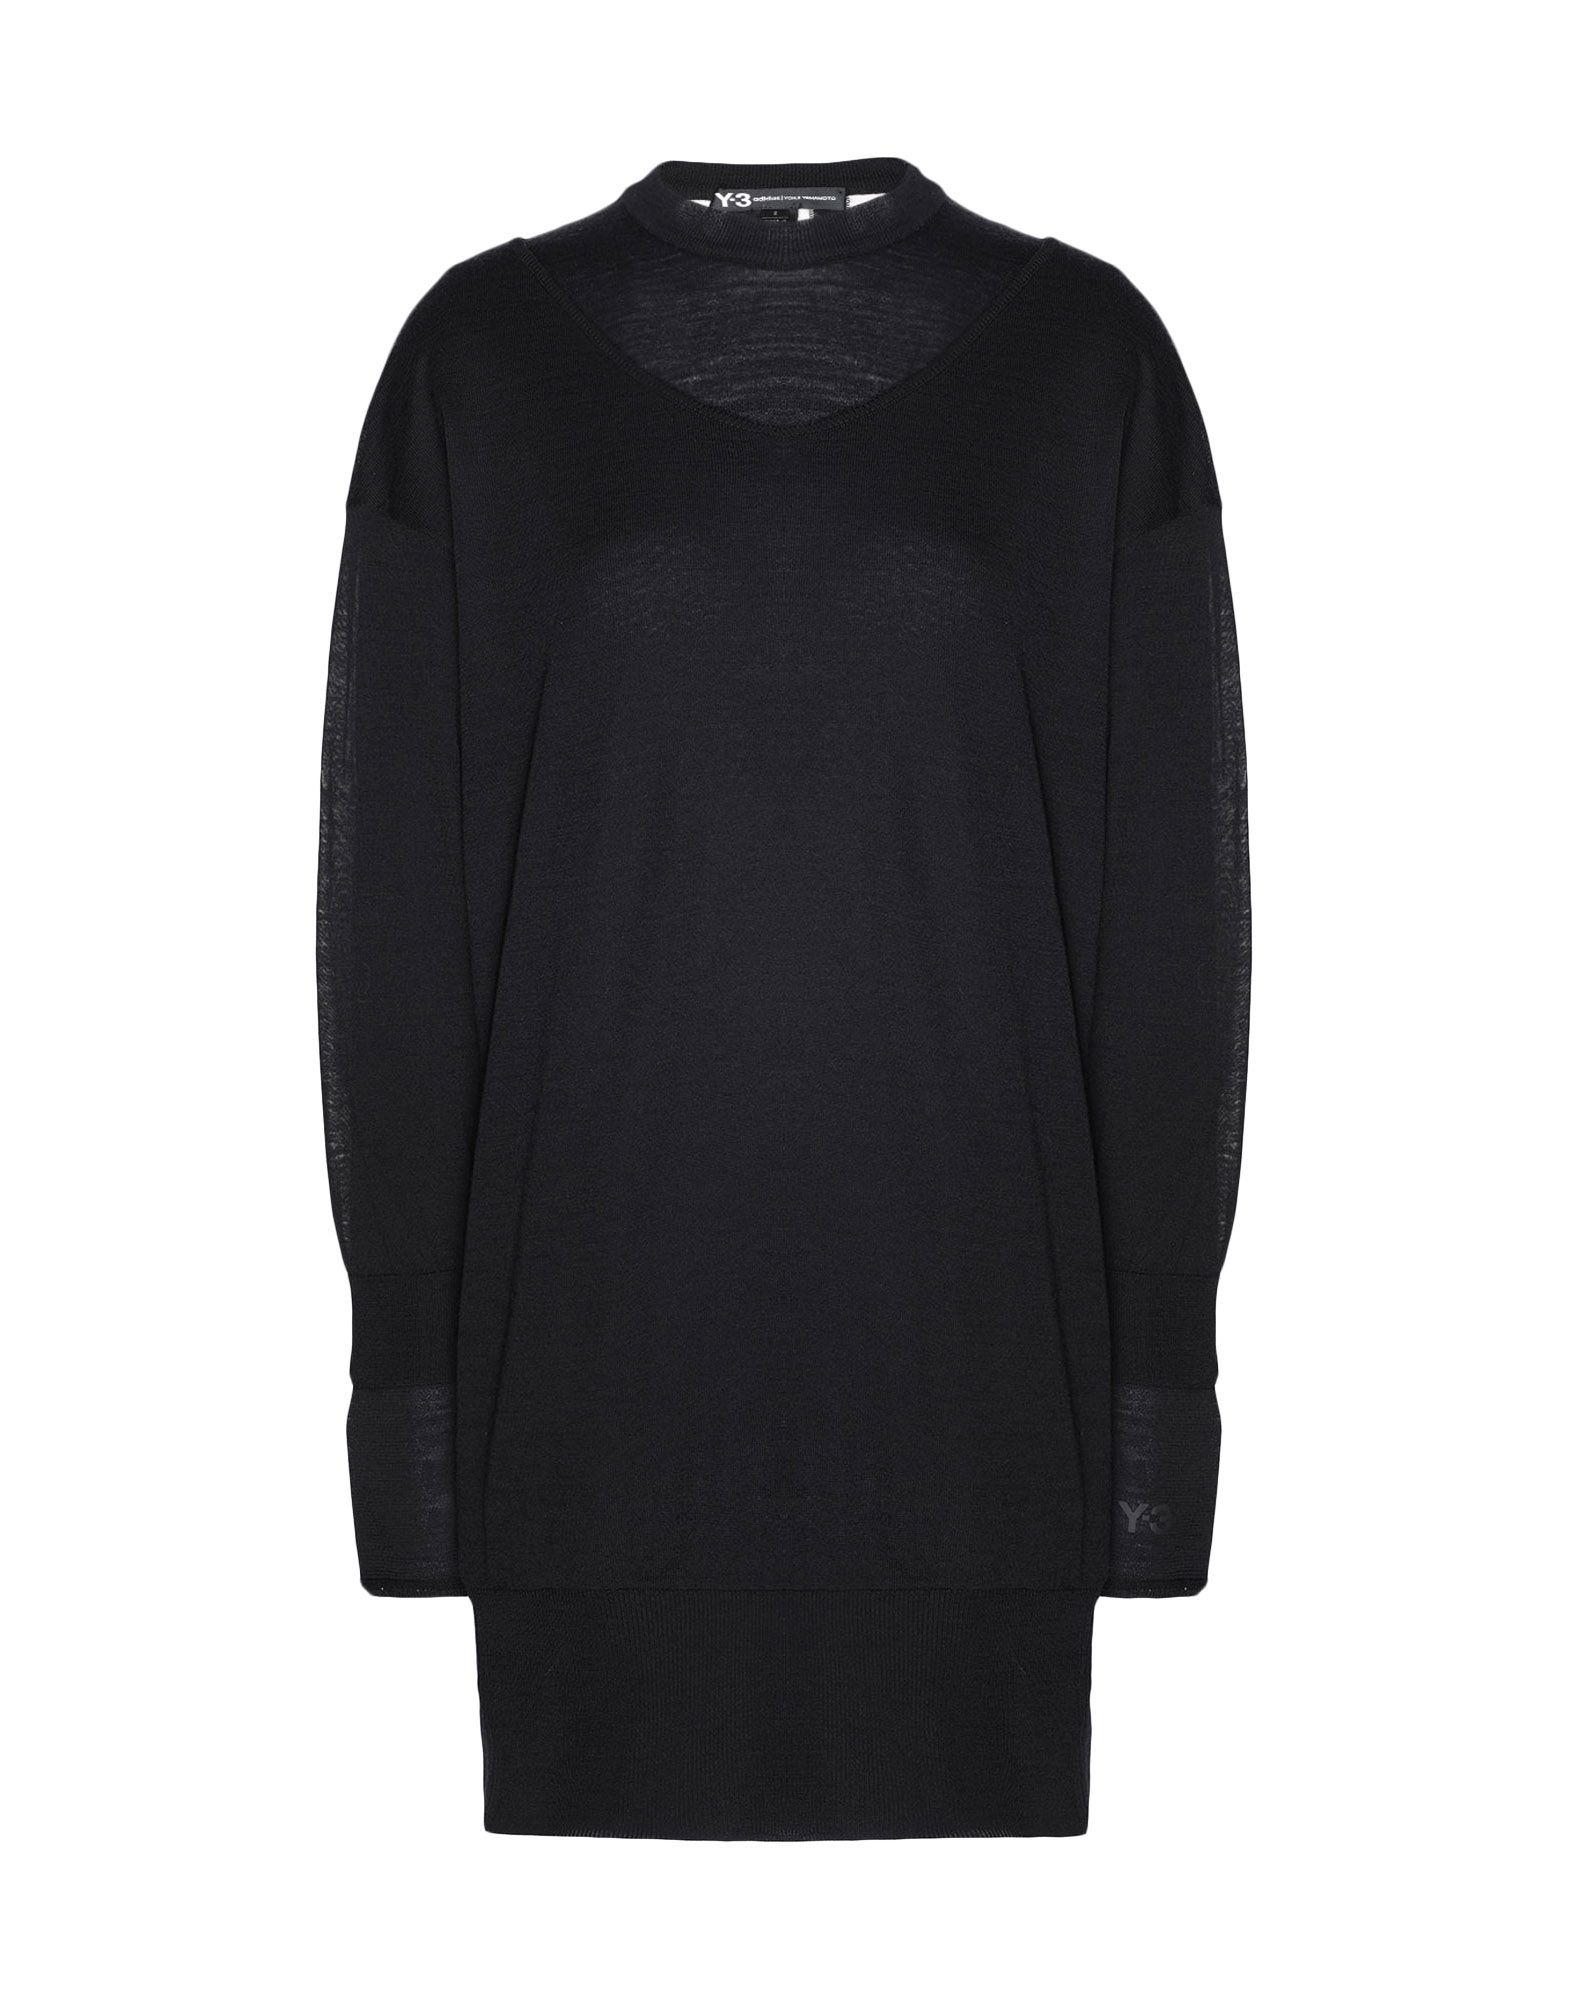 Y-3 Y-3 Layered Knitted Long Sweater Long sleeve sweater Woman f